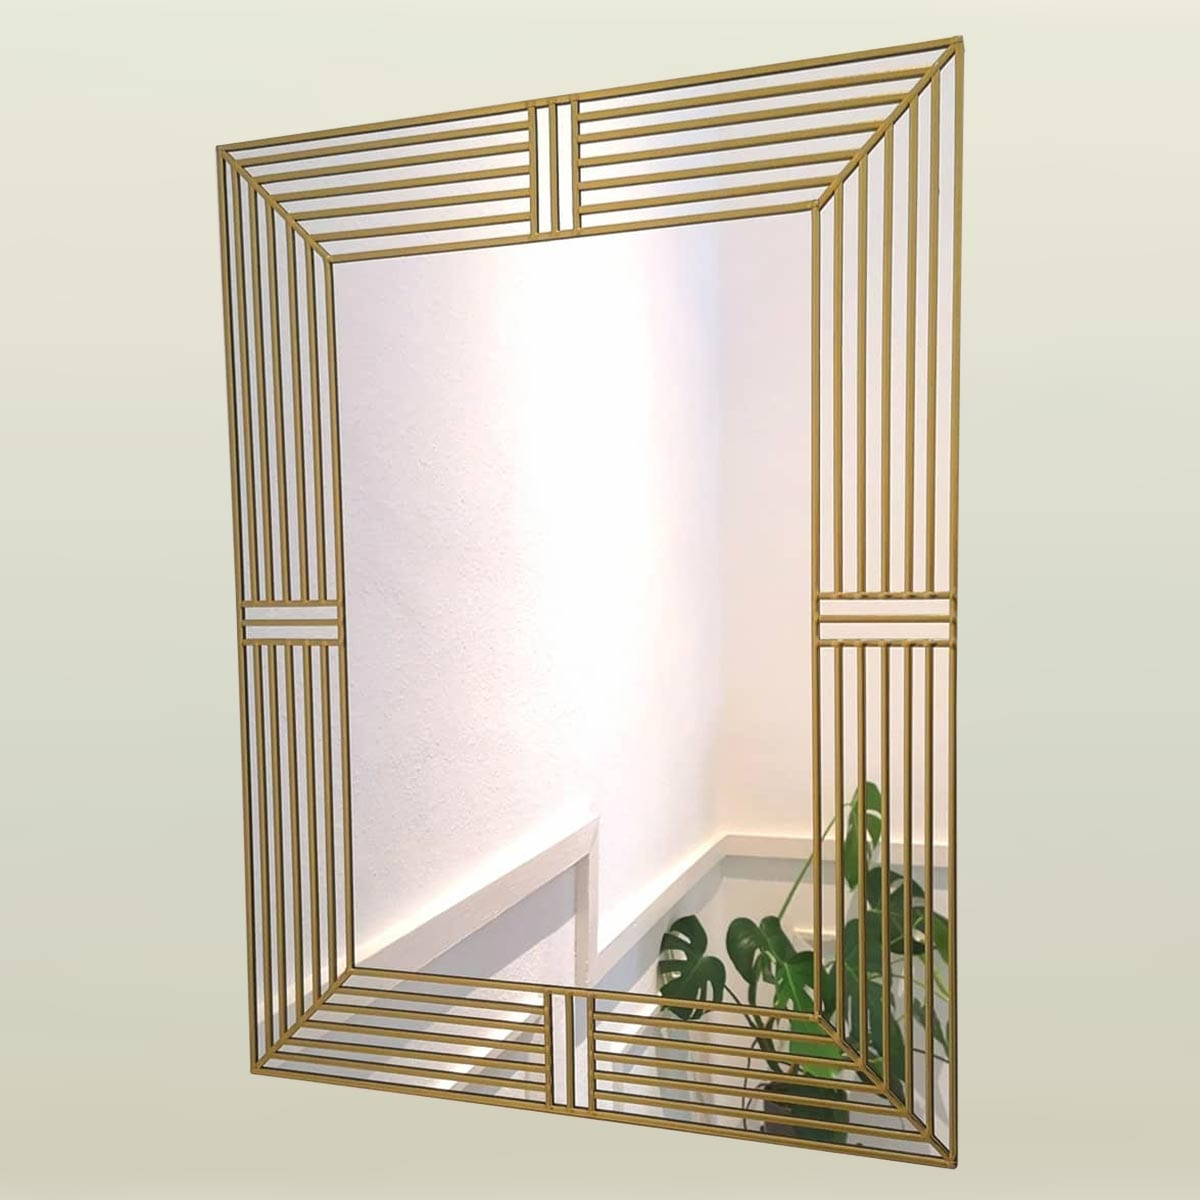 Most Recently Released Deco Wall Mirrors Intended For Art Deco Wall Mirror 61X91Cm (2Ftx3Ft) (Gallery 5 of 20)